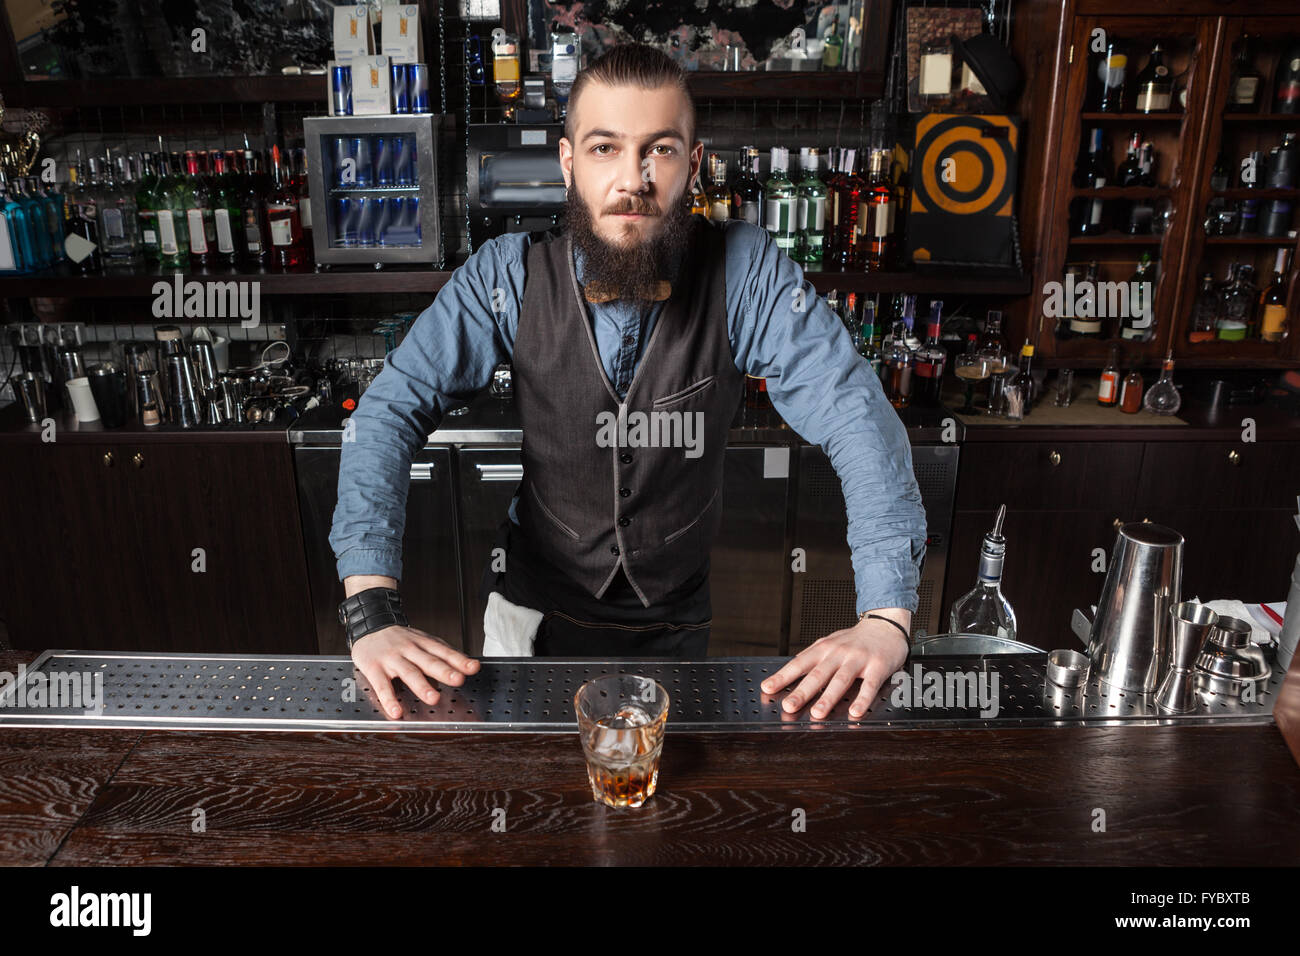 Confident Barman serving cocktail at the bar. - Stock Image